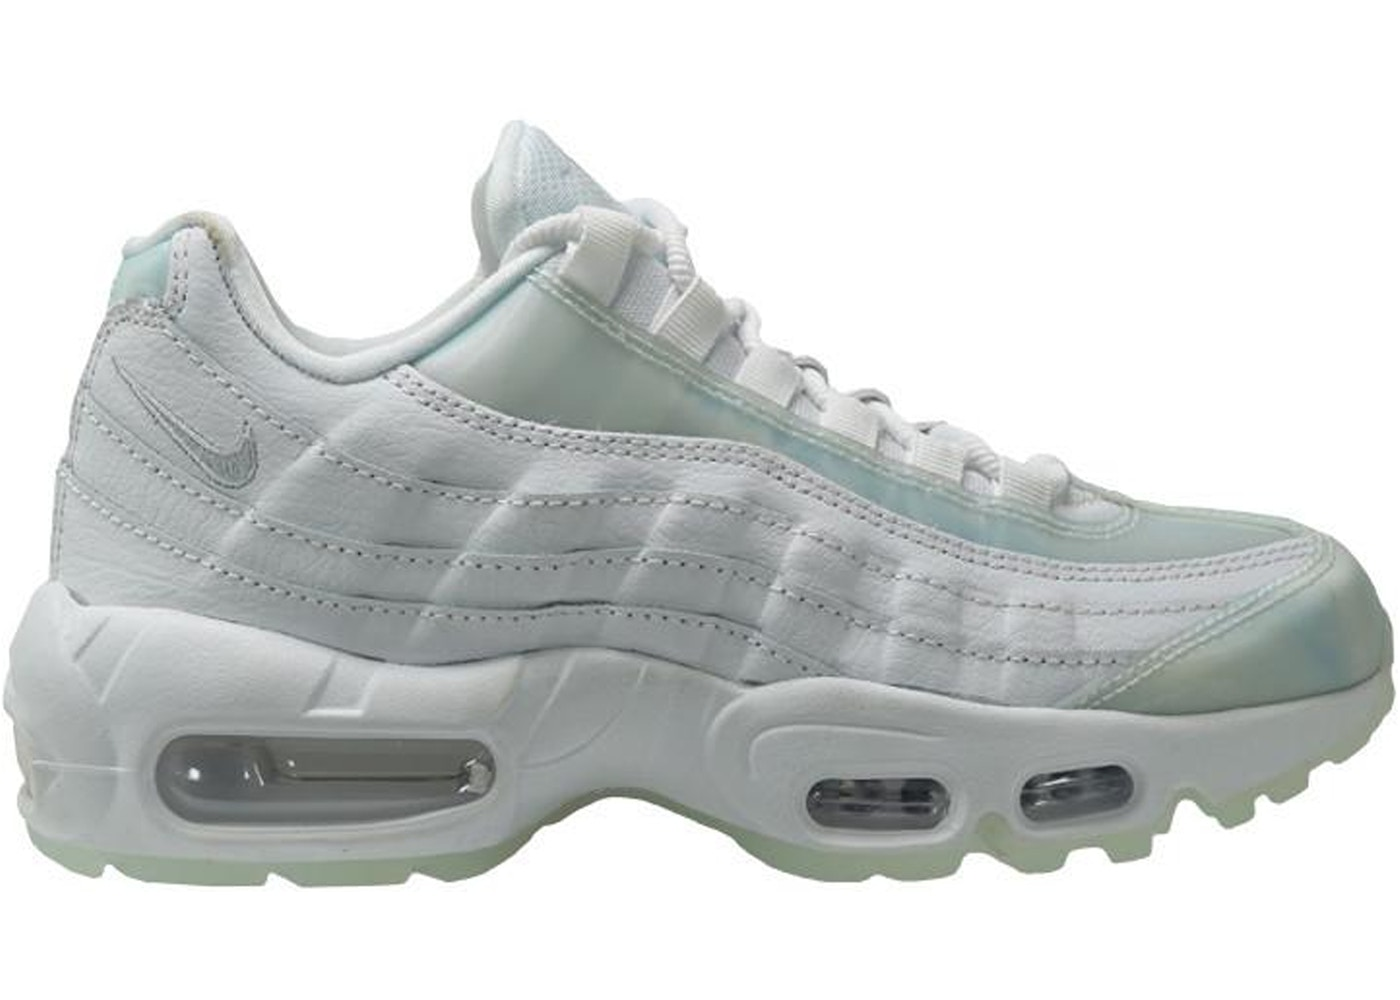 innovative design 64ba0 9bd01 ... Cheap Nike Air Max 95 White Grey Trainers UK Sale  Air Max 95 White  Platinum Ice (W) ...